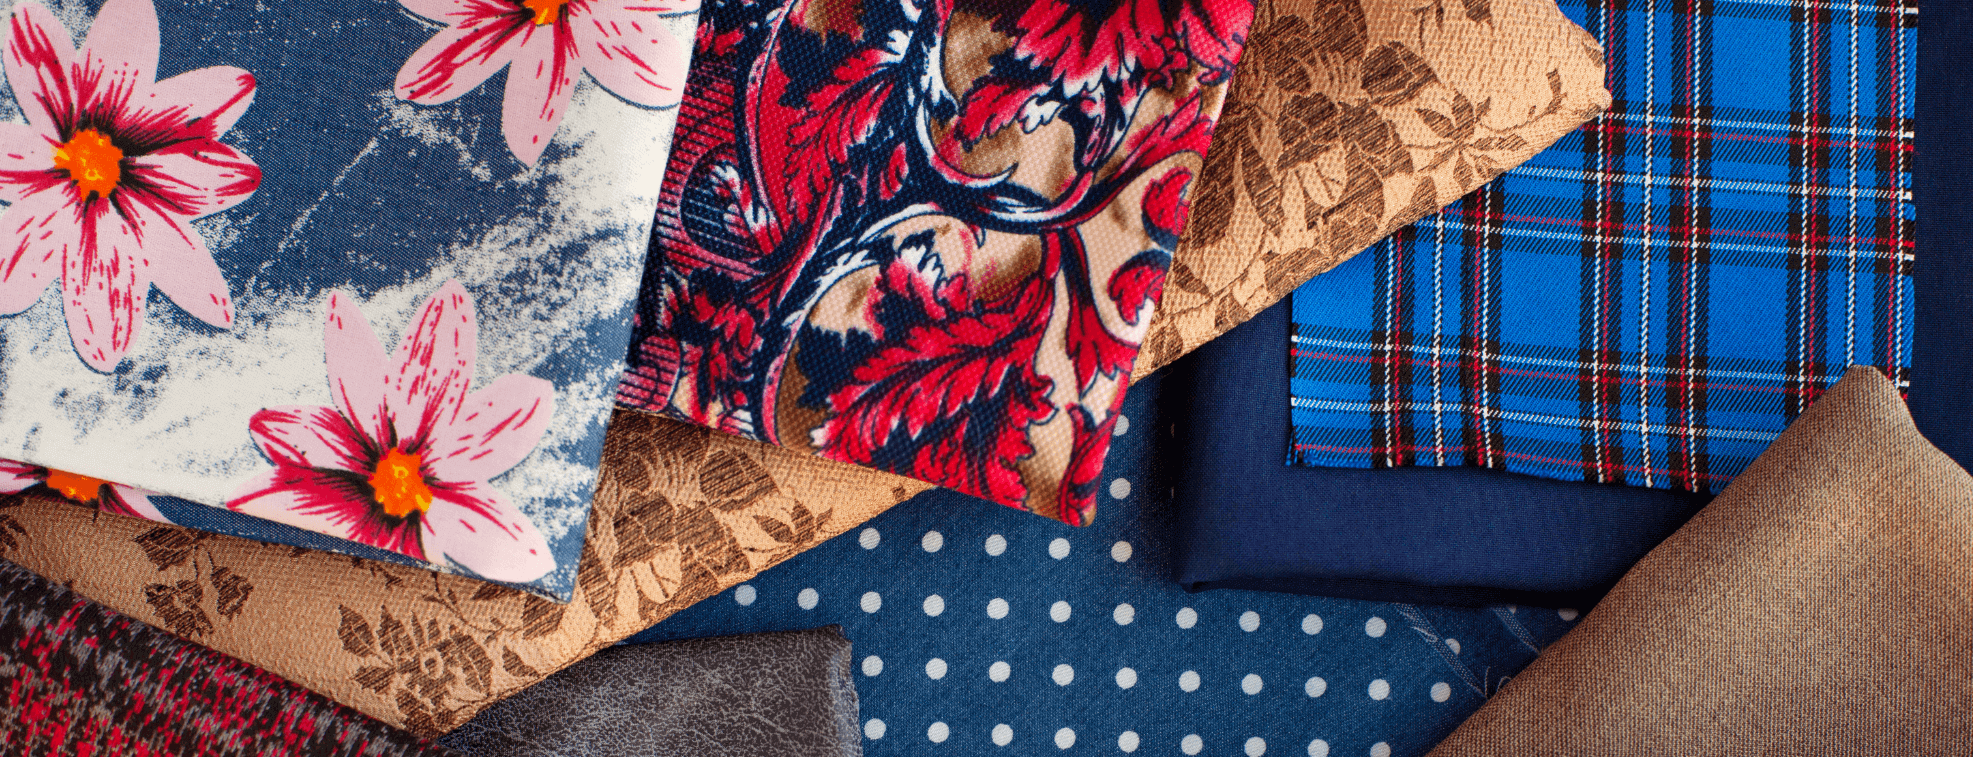 Different colorful textiles with prints placed on a table